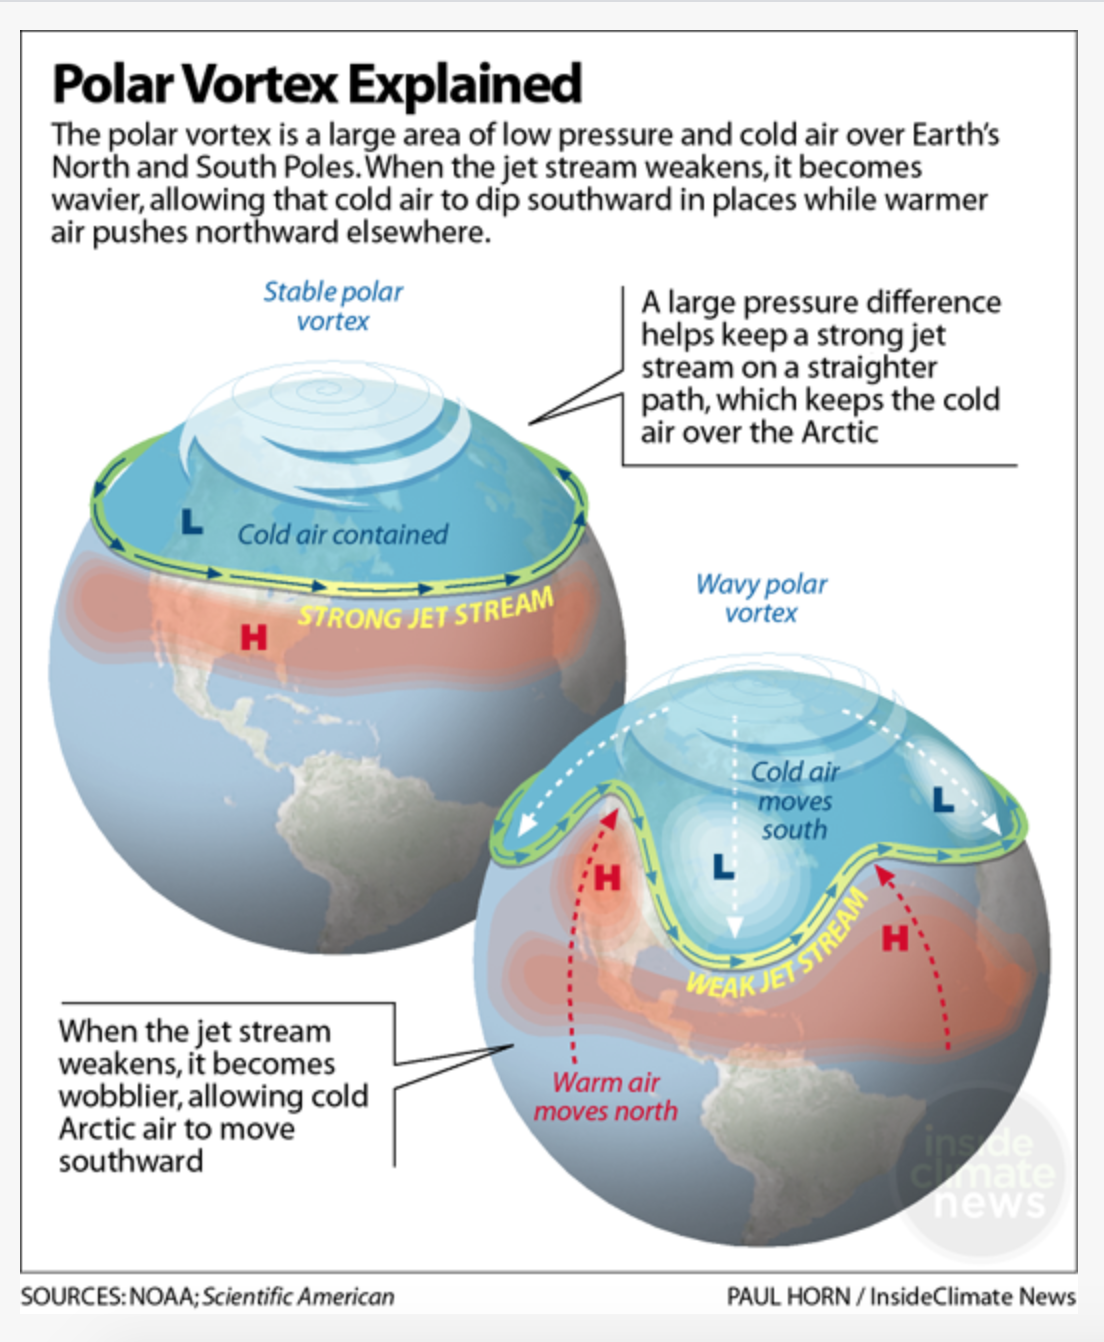 Header text reads, 'Polar vortex explained: The polar vortex is a large area of low pressure and cold air over Earth's North and South Poles. When the jet stream weakens, it becomes more wavy, allowing that cold air to dip southward in places while warmer air pushes northward elsewhere.' The main body is a diagram showing two globes with the North Pole, Americas and the western edge of Africa just visible. On top of both globes is a blob of cold blue air (denoted by a blue L for Low temperature), divided by a band represented by a yellow line with arrows pointing west to east, labelled the jet stream. Underneath the yellow band are red patches labelled with H for High temperature. In the first globe, the jet stream is strong, so the band is level around the top of north america, across the Atlantic and over to Europe, and labelled 'Strong Jet Stream'. On top of the first globe is a white swirl labelled 'Stable polar vortex'. Underneath this is a label reading 'cold air contained', within the blue blob of cold air. A box points to the Stable polar vortex, reading 'A large pressure difference helps keep a strong jet stream on a straighter path, with keeps the cold air over the Arctic'. The second globe is a very different picture, with the top of the globe labelled 'Wavy polar vortex' and label in the irregular blue blob reading 'Cold air moves south'. The yellow band is very wobbly, labeled Weak jet stream. The blue Ls are in patches of cold that have moved south, with 3 white arrows across the globe pointing down, also labelled 'Cold air moves south'. Below the yellow line, there are red arrows pointing up in irregular red patches showing hot air moving north, denoted also by 2 red Hs for High temperature. There is a text box pointed at the red arrow over Mexico reading ' When the jet stream weakens, it becomes wobblier, allowing cold Arctic air to move southward.'